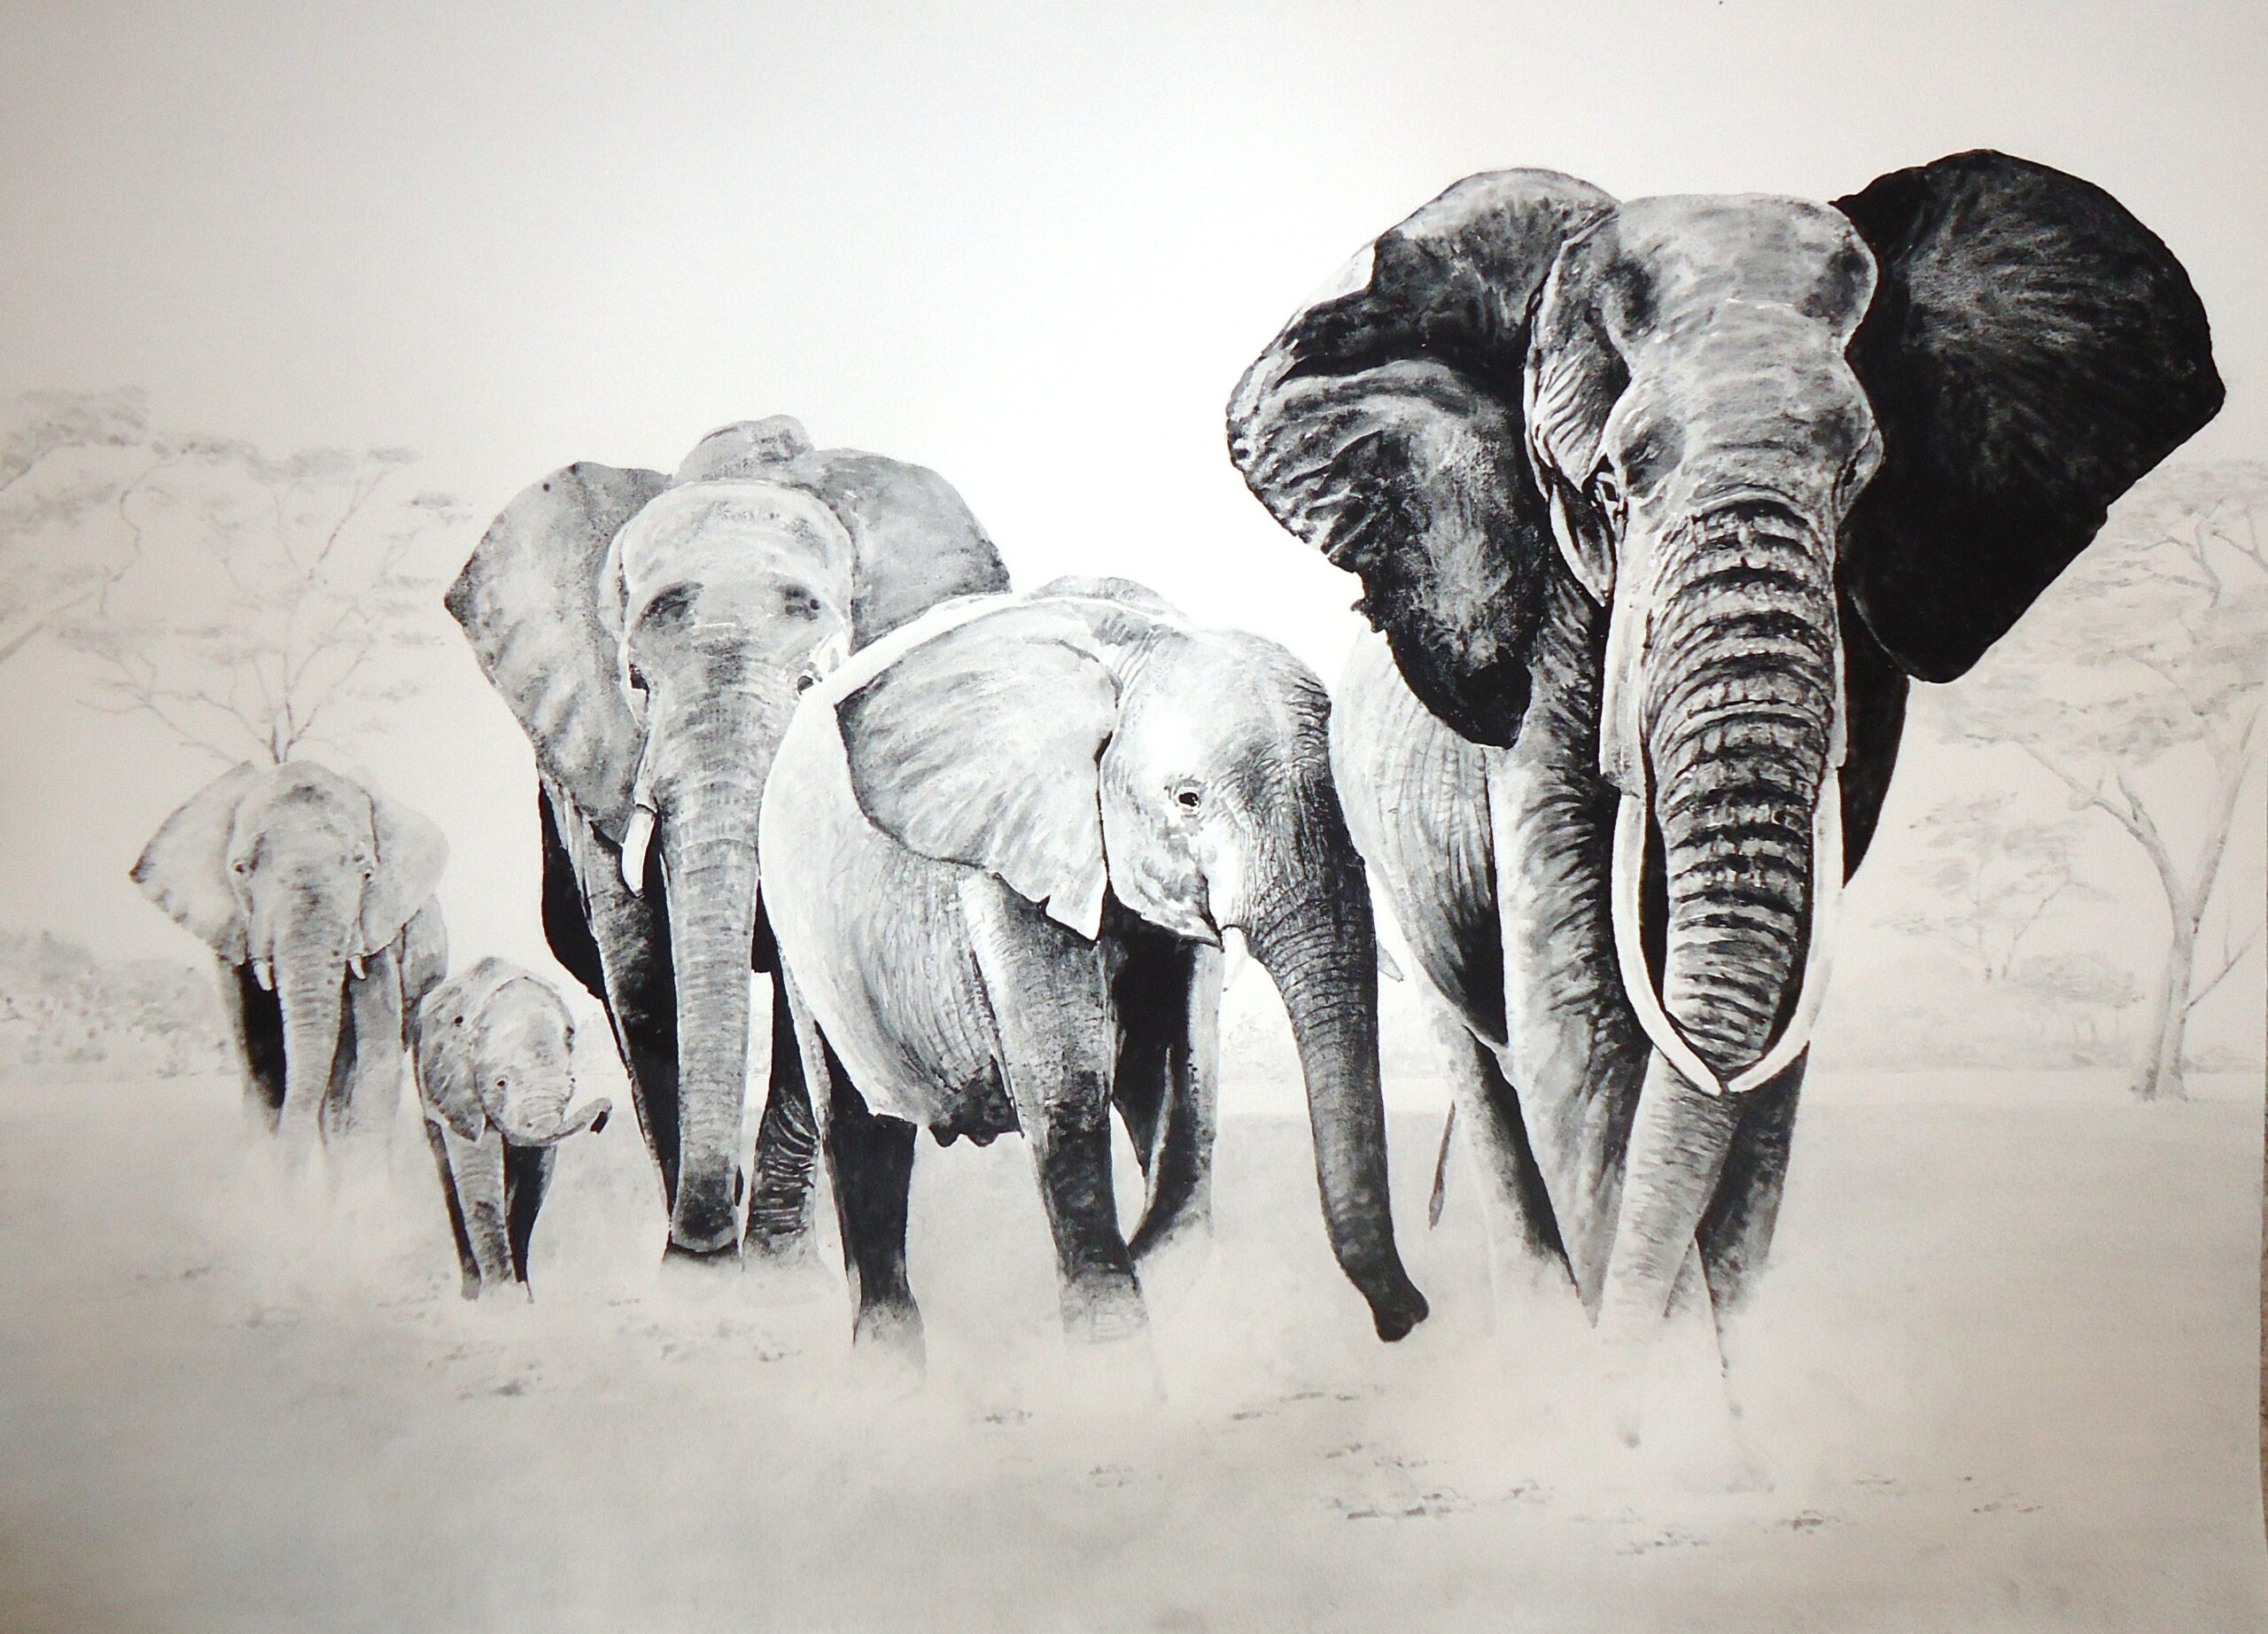 A painting of a family of elephants by Keith Cains.